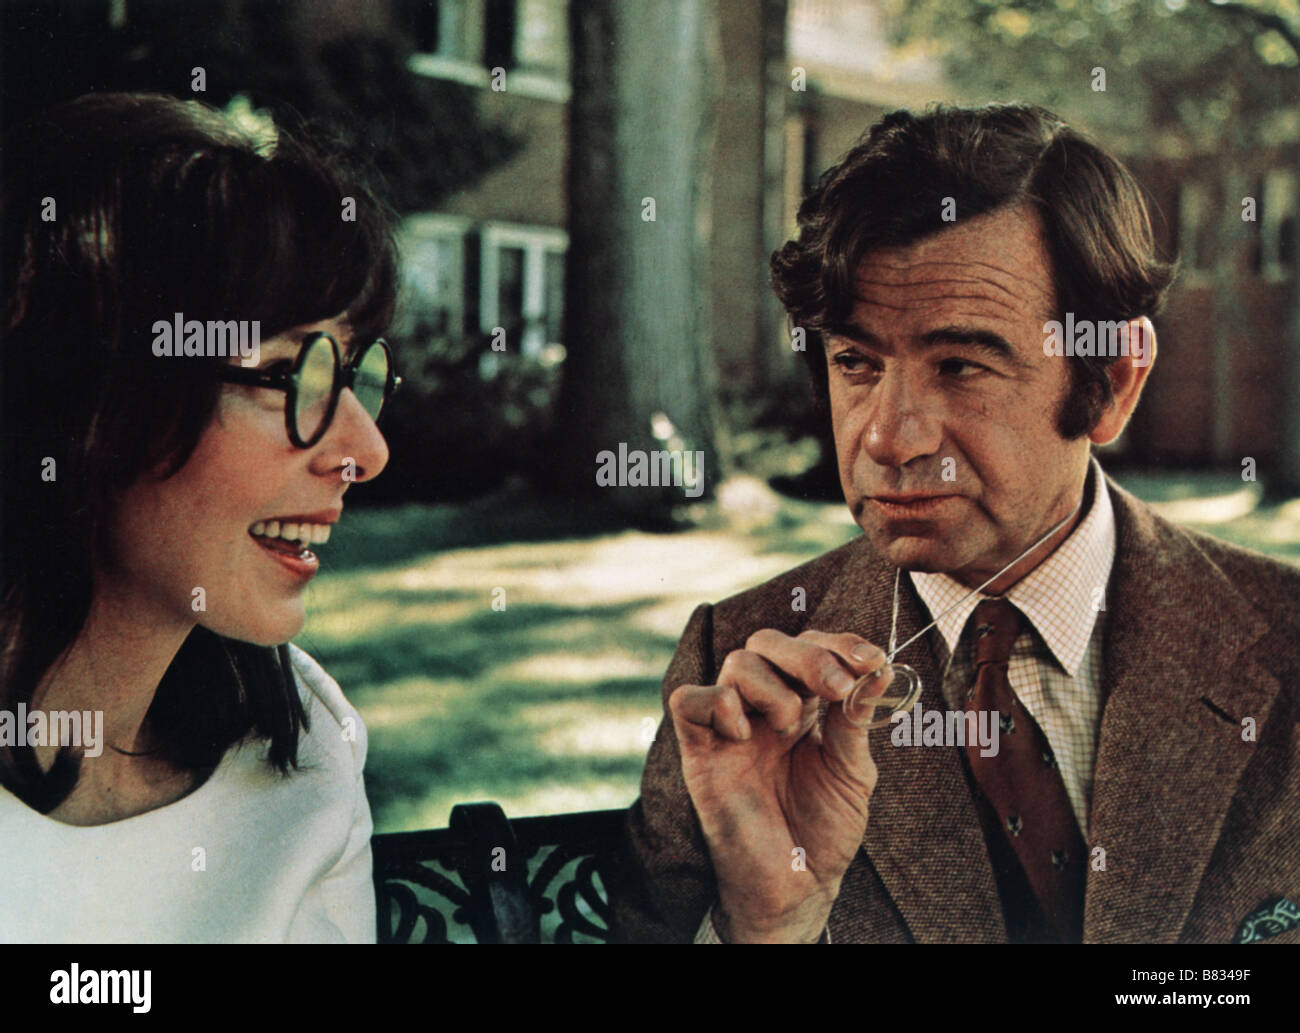 A New Leaf A New Leaf (1971) USA Elaine May, Walter Matthau  Director: Elaine MayStock Photo